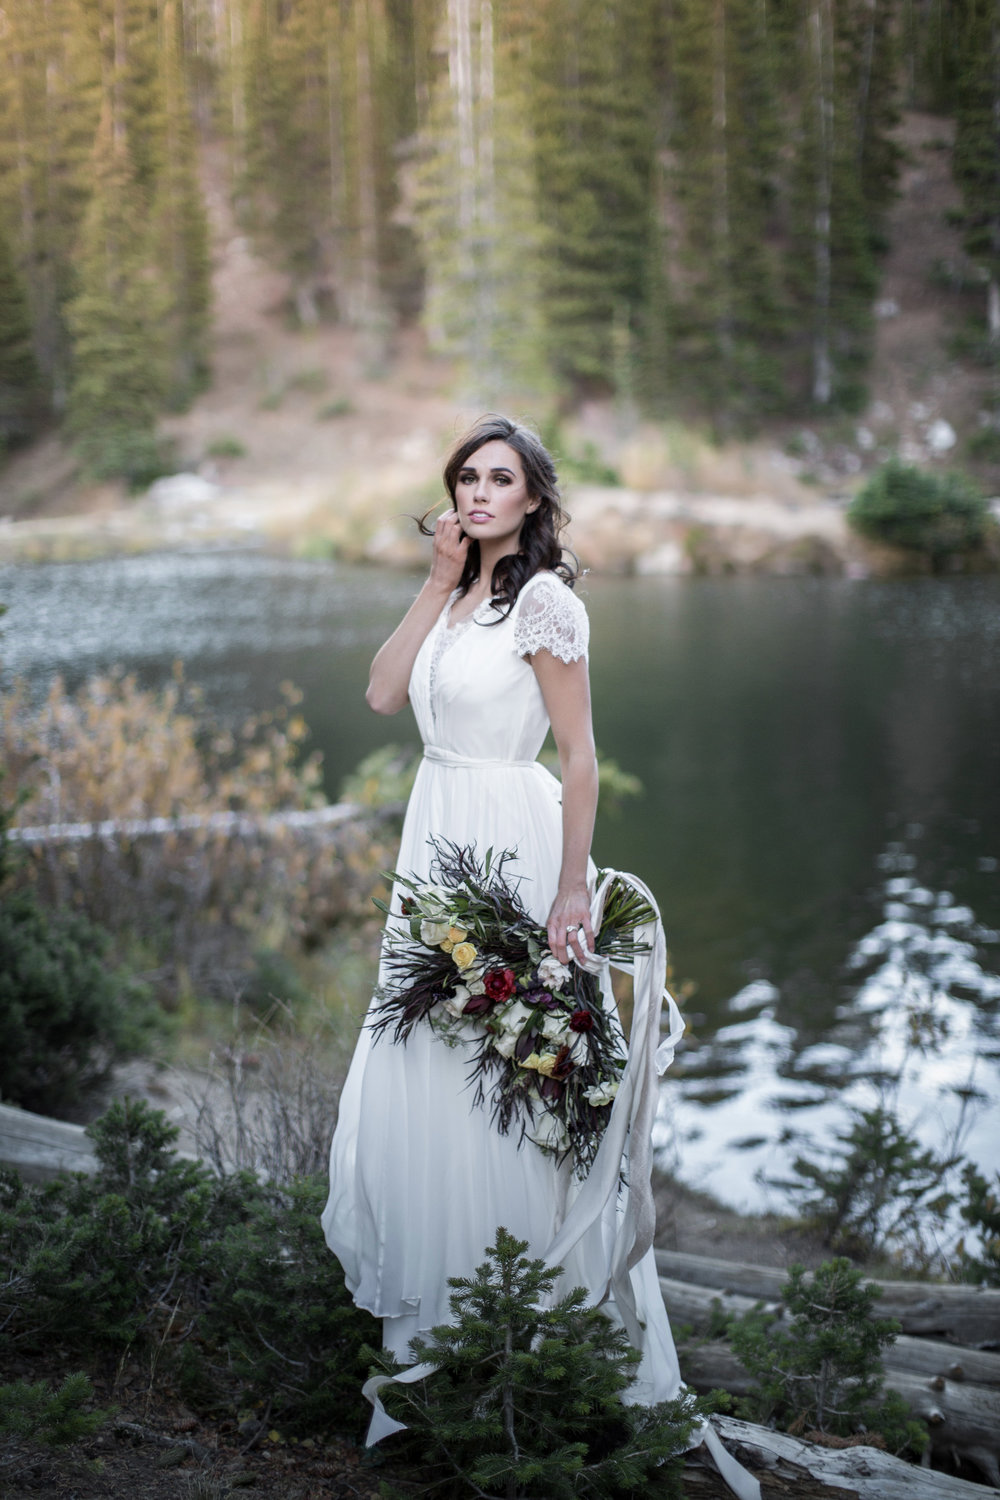 UtahValleyBrideShootTR2016 (59 of 110).jpg